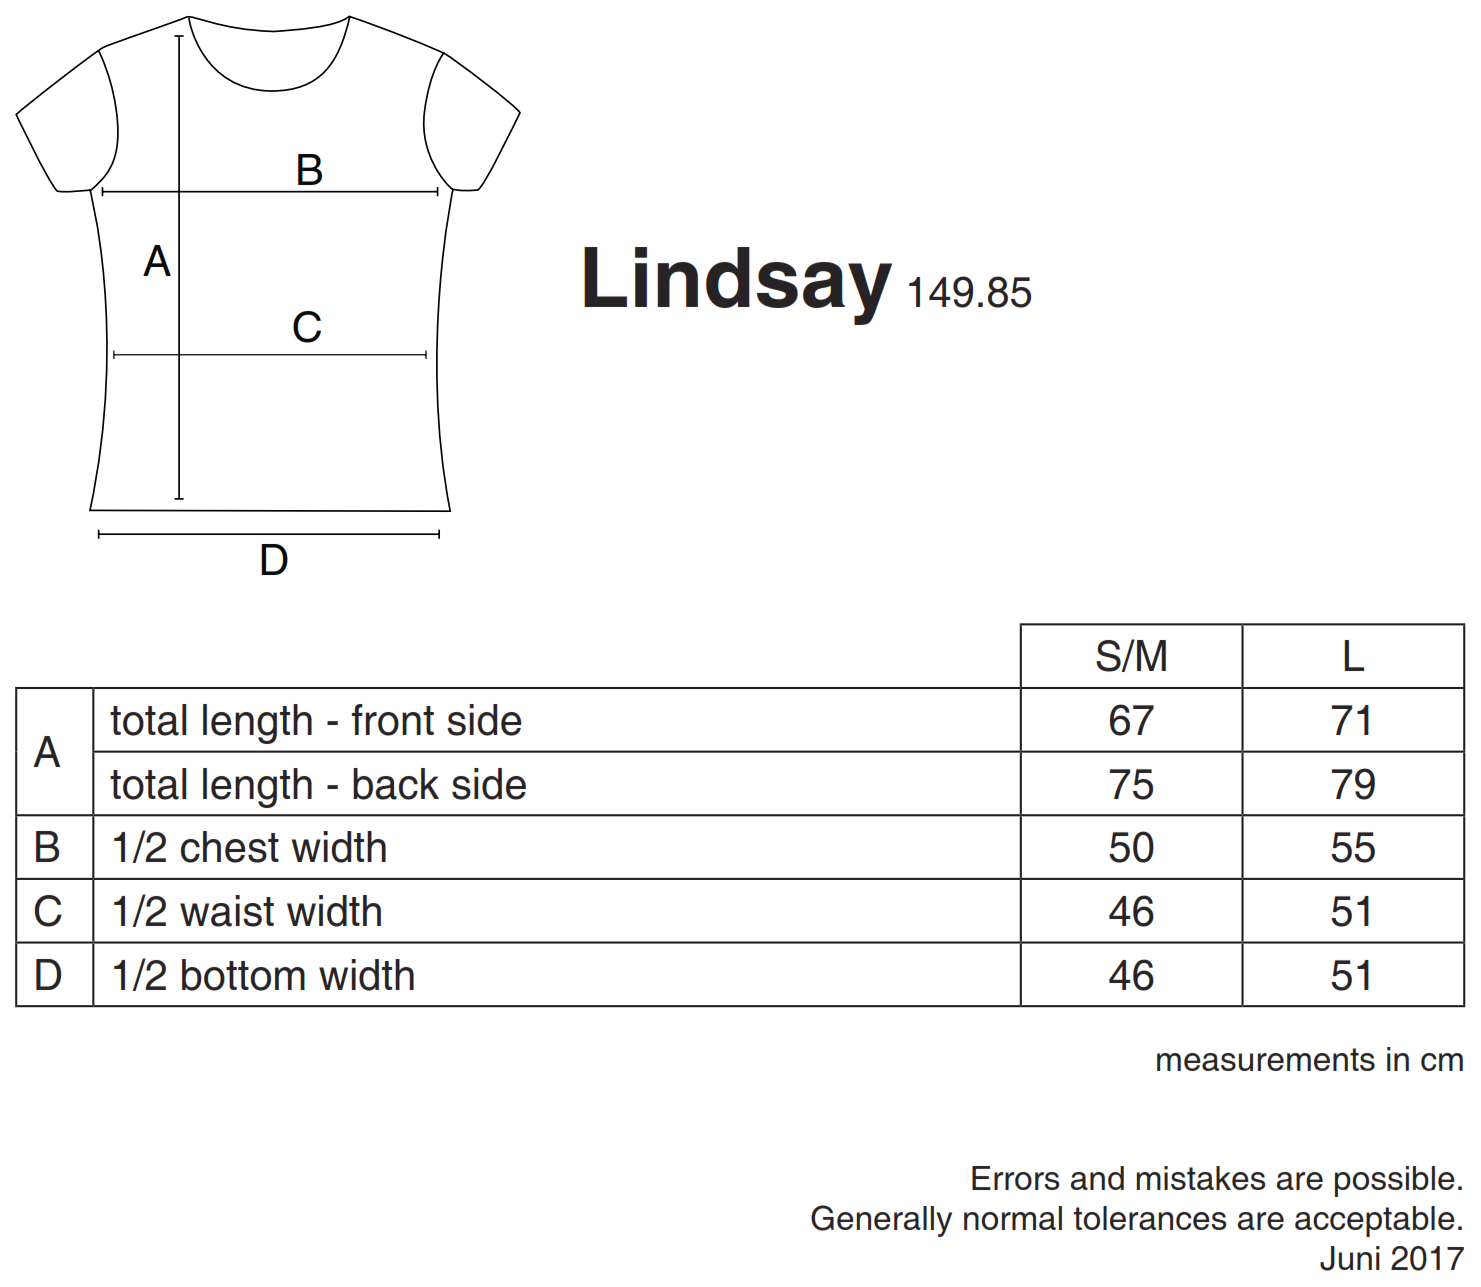 nakedshirt: Lindsay Women`s Loose Fashion T-Shirt TF-RL-O-BL127